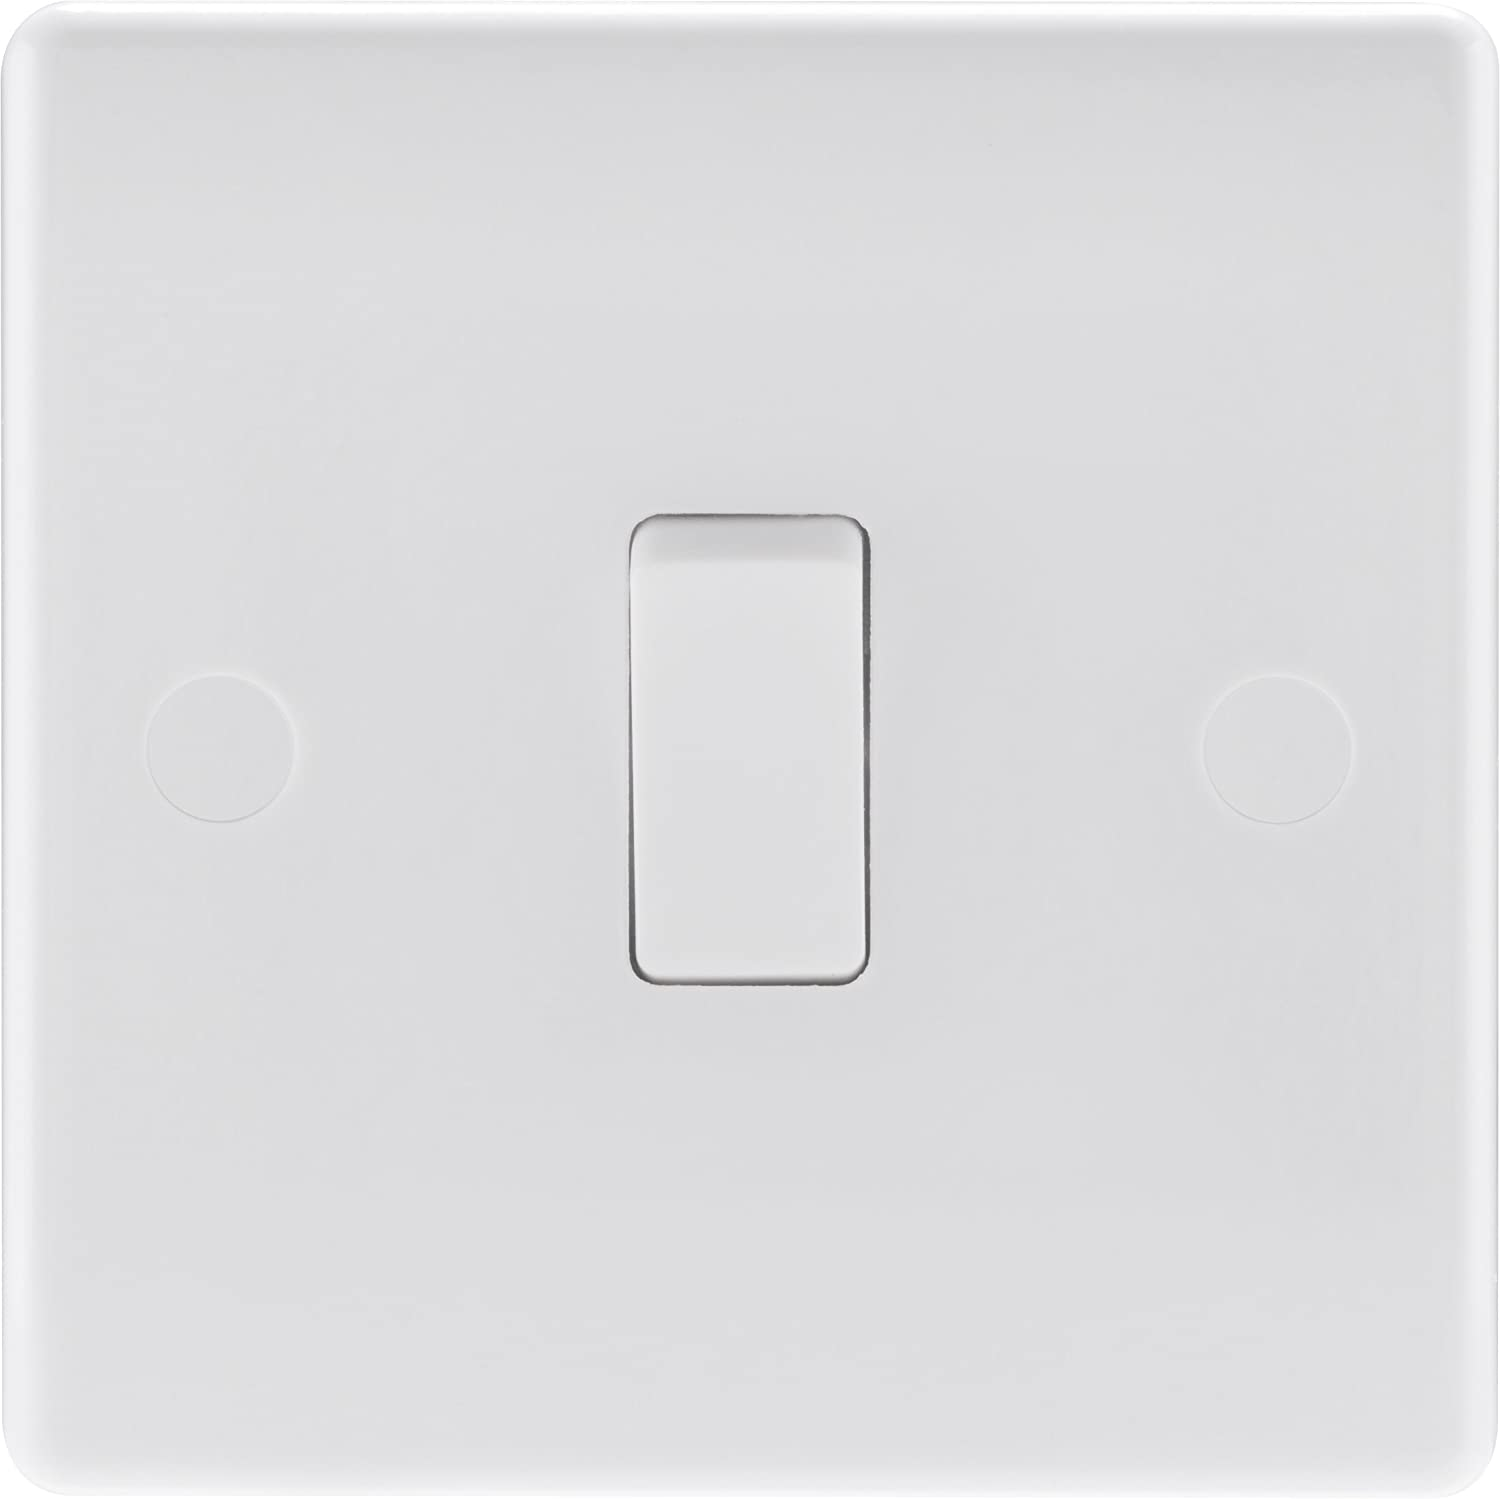 NEW 2 GANG WAY ELECTRIC LIGHT SWITCH WHITE PLASTIC DOUBLE SWITCHES.